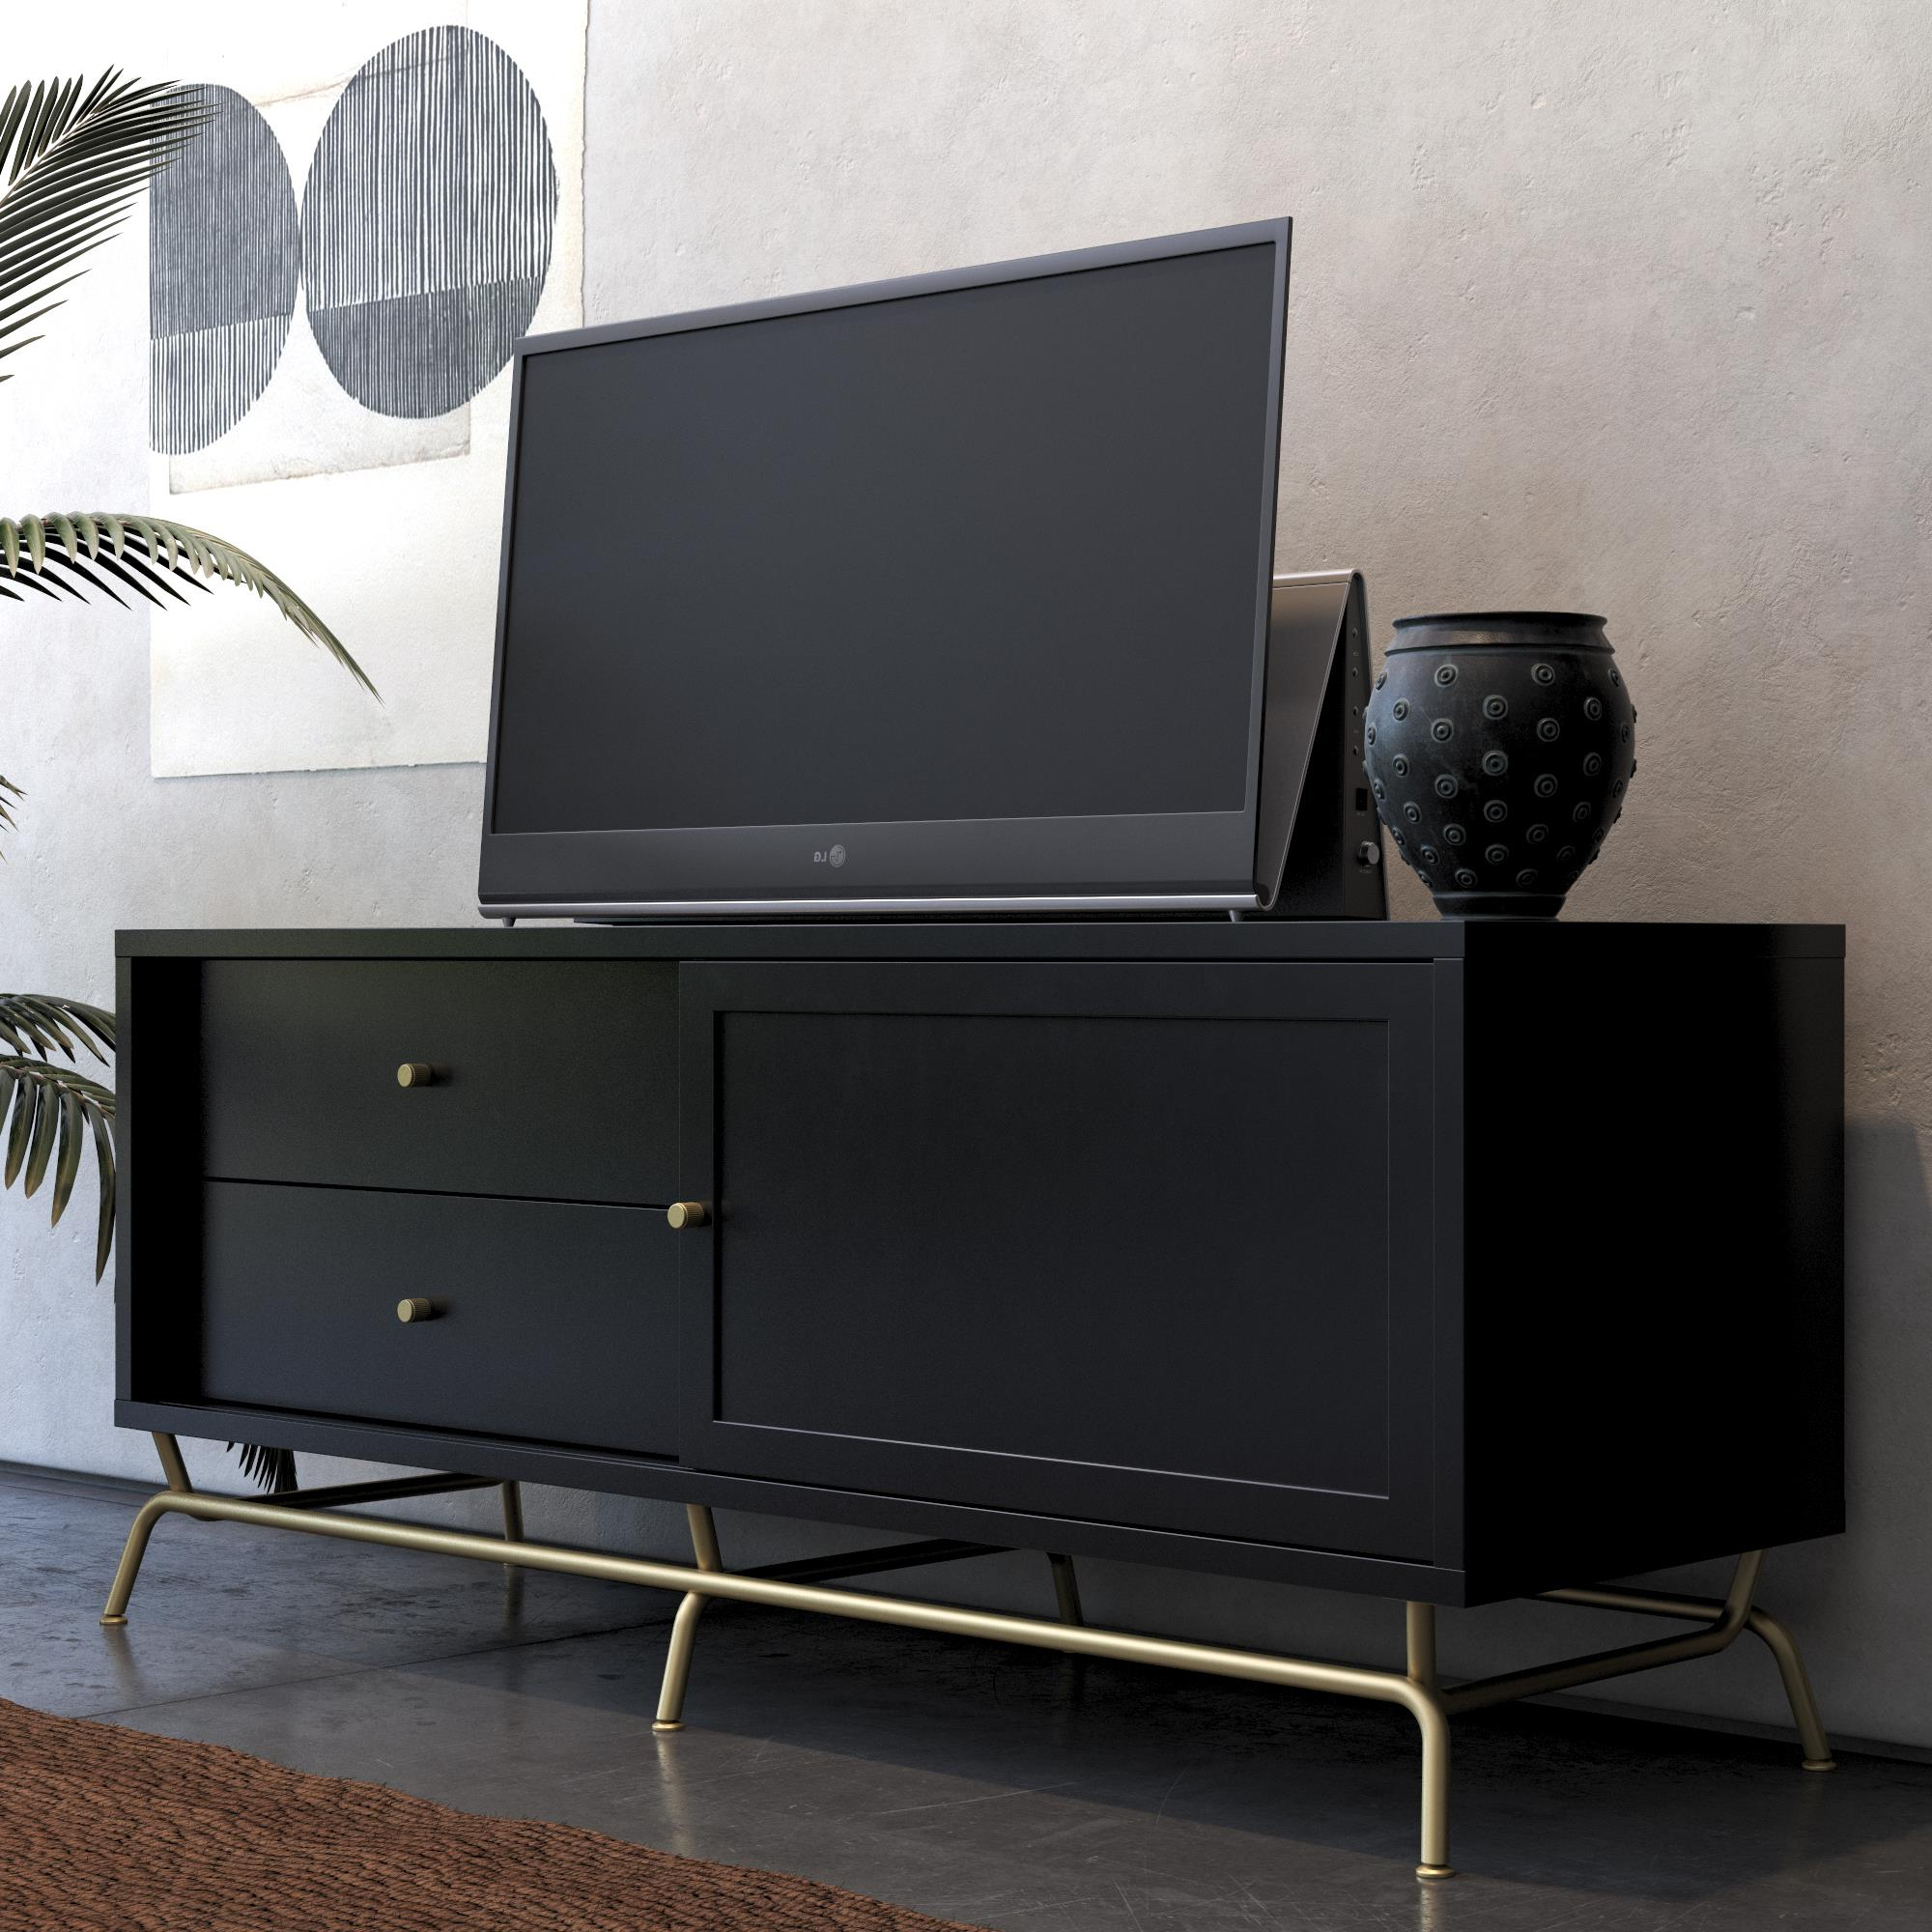 """Cosmolivingcosmopolitan Nova Tv Stand For Tvs Up To 65 Throughout Most Current Adora Tv Stands For Tvs Up To 65"""" (View 18 of 20)"""